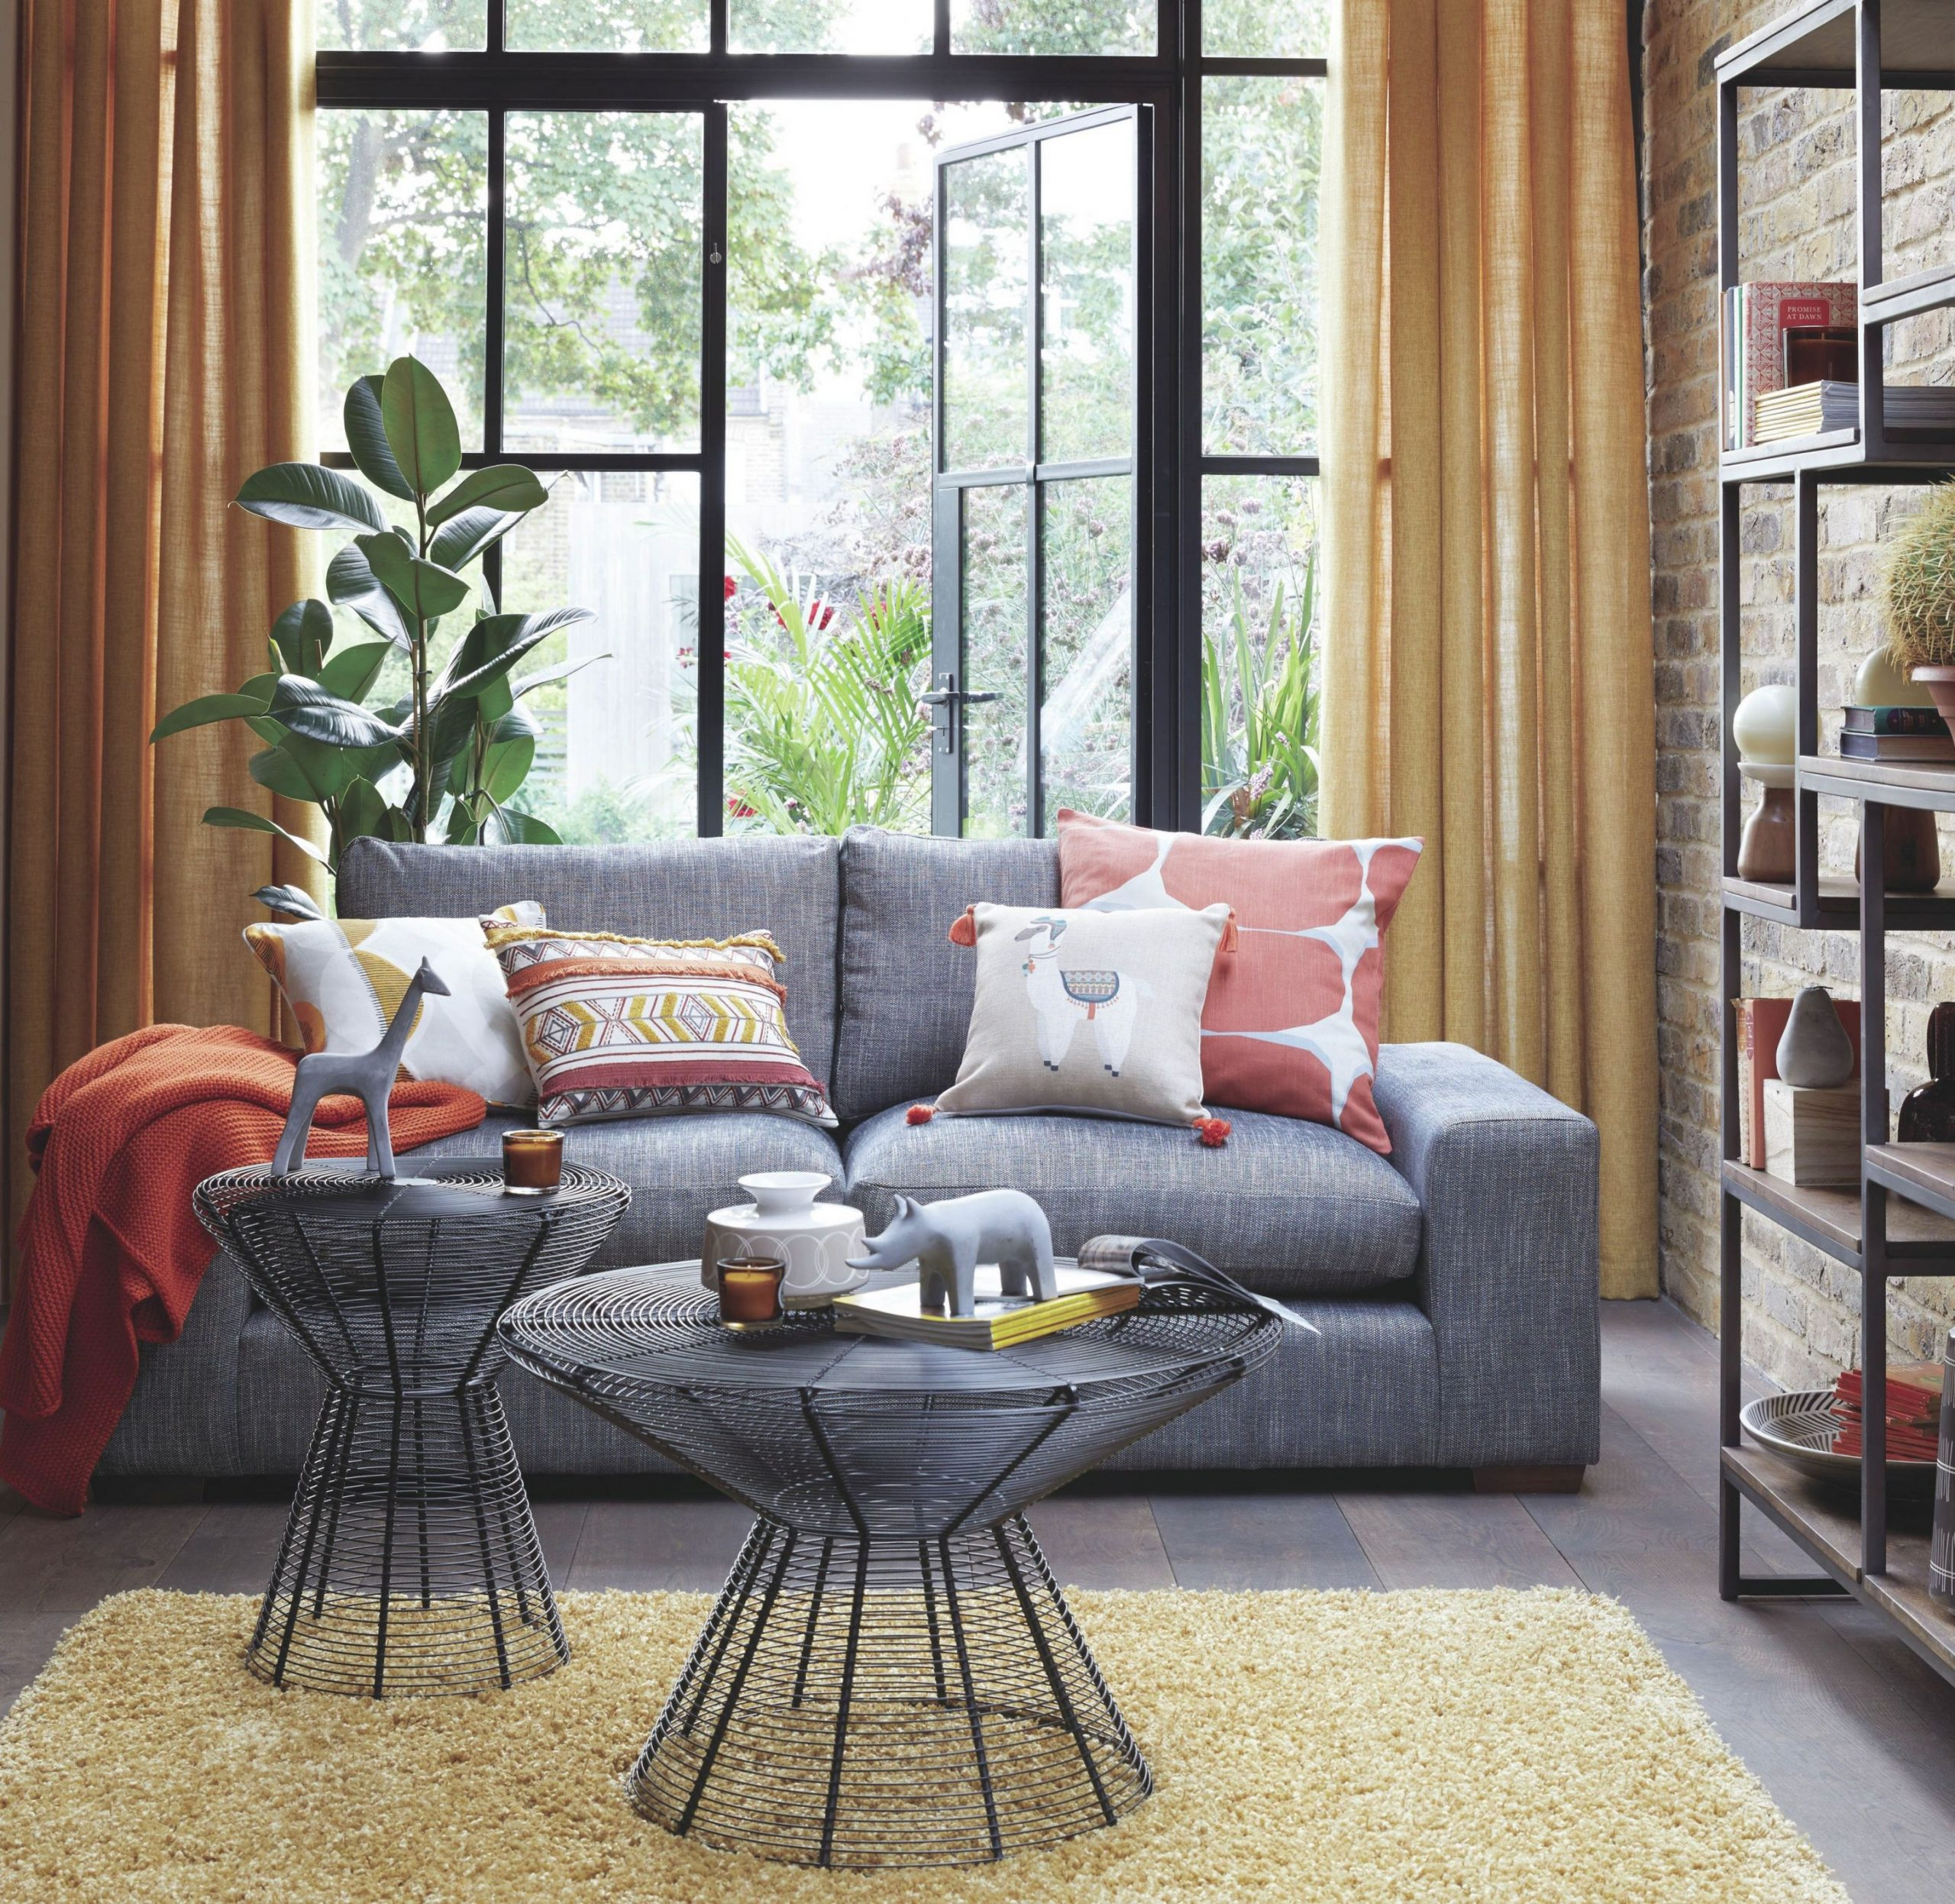 5 Design Tricks For Small Living Rooms – Layout Ideas With with Decoration Small Living Room